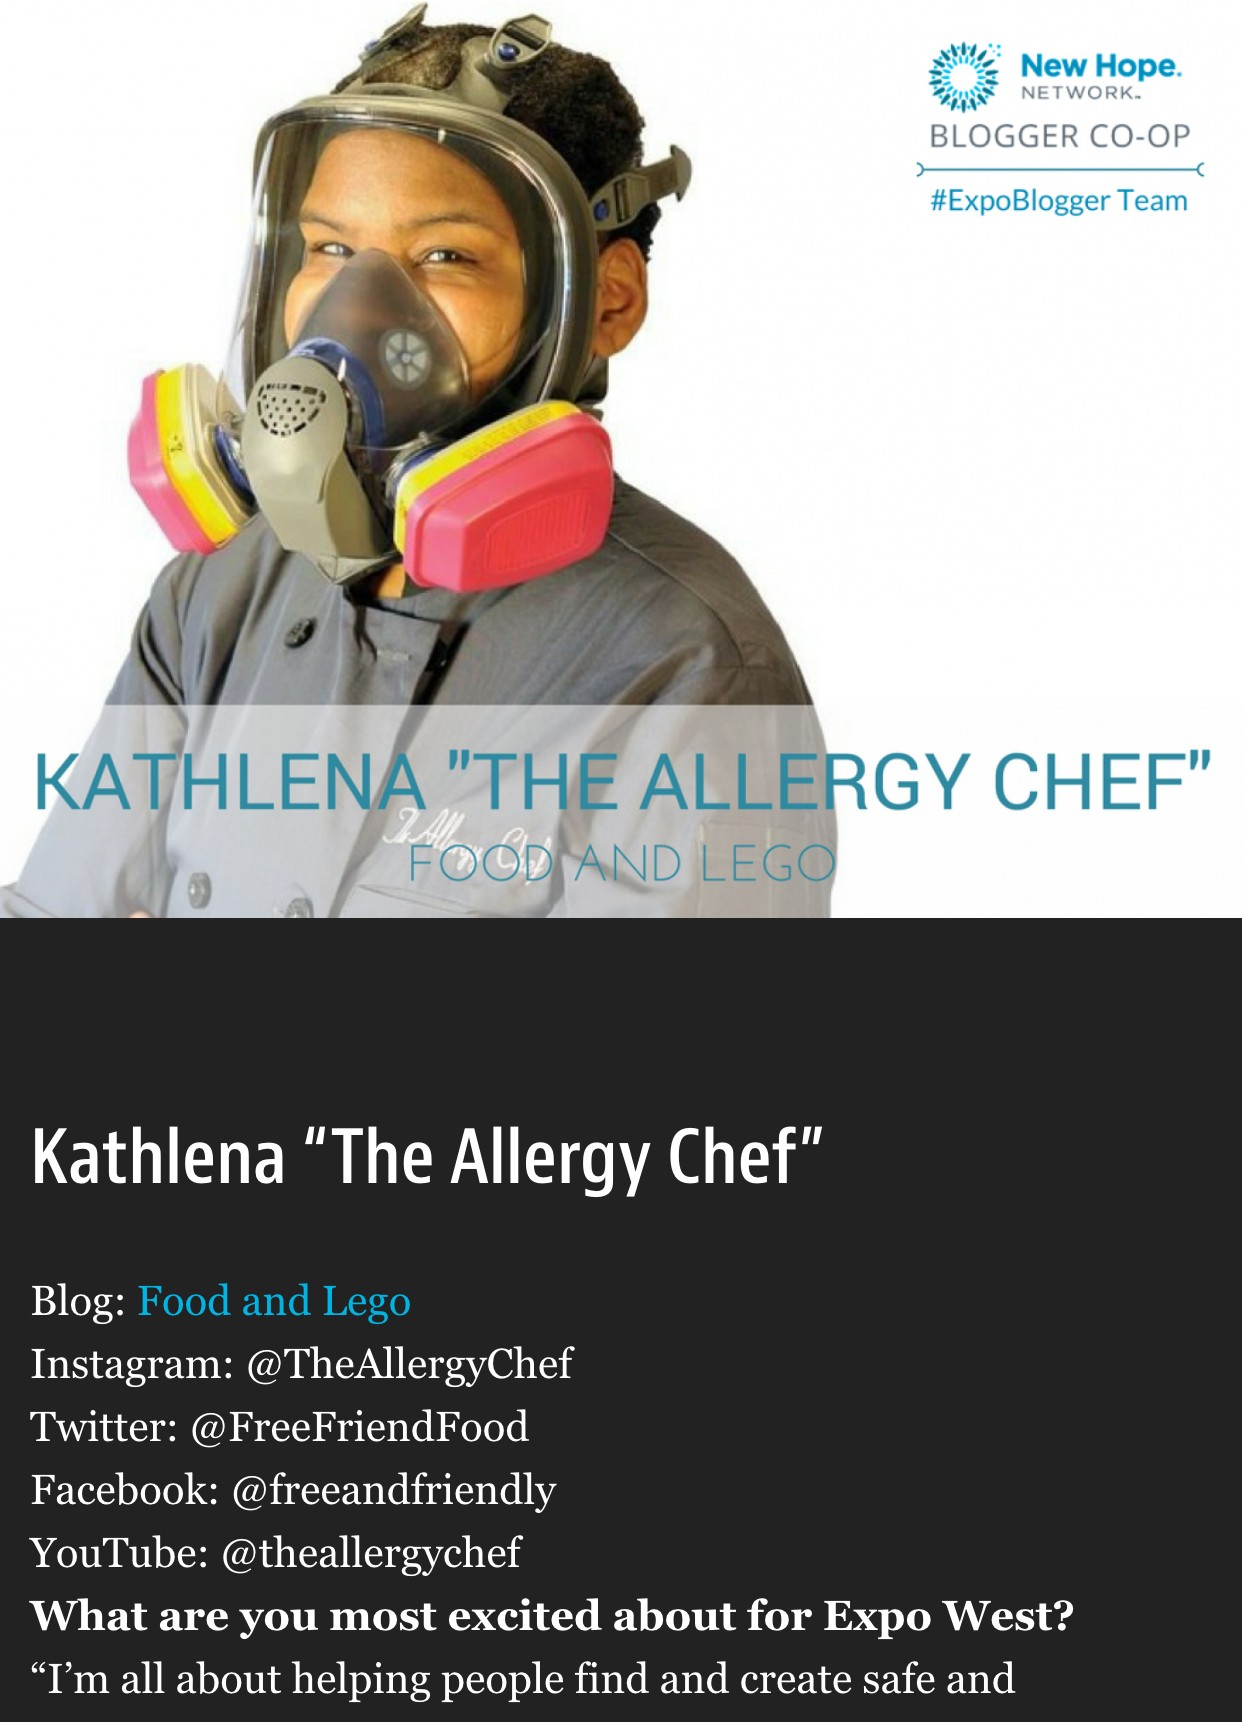 The Allergy Chef